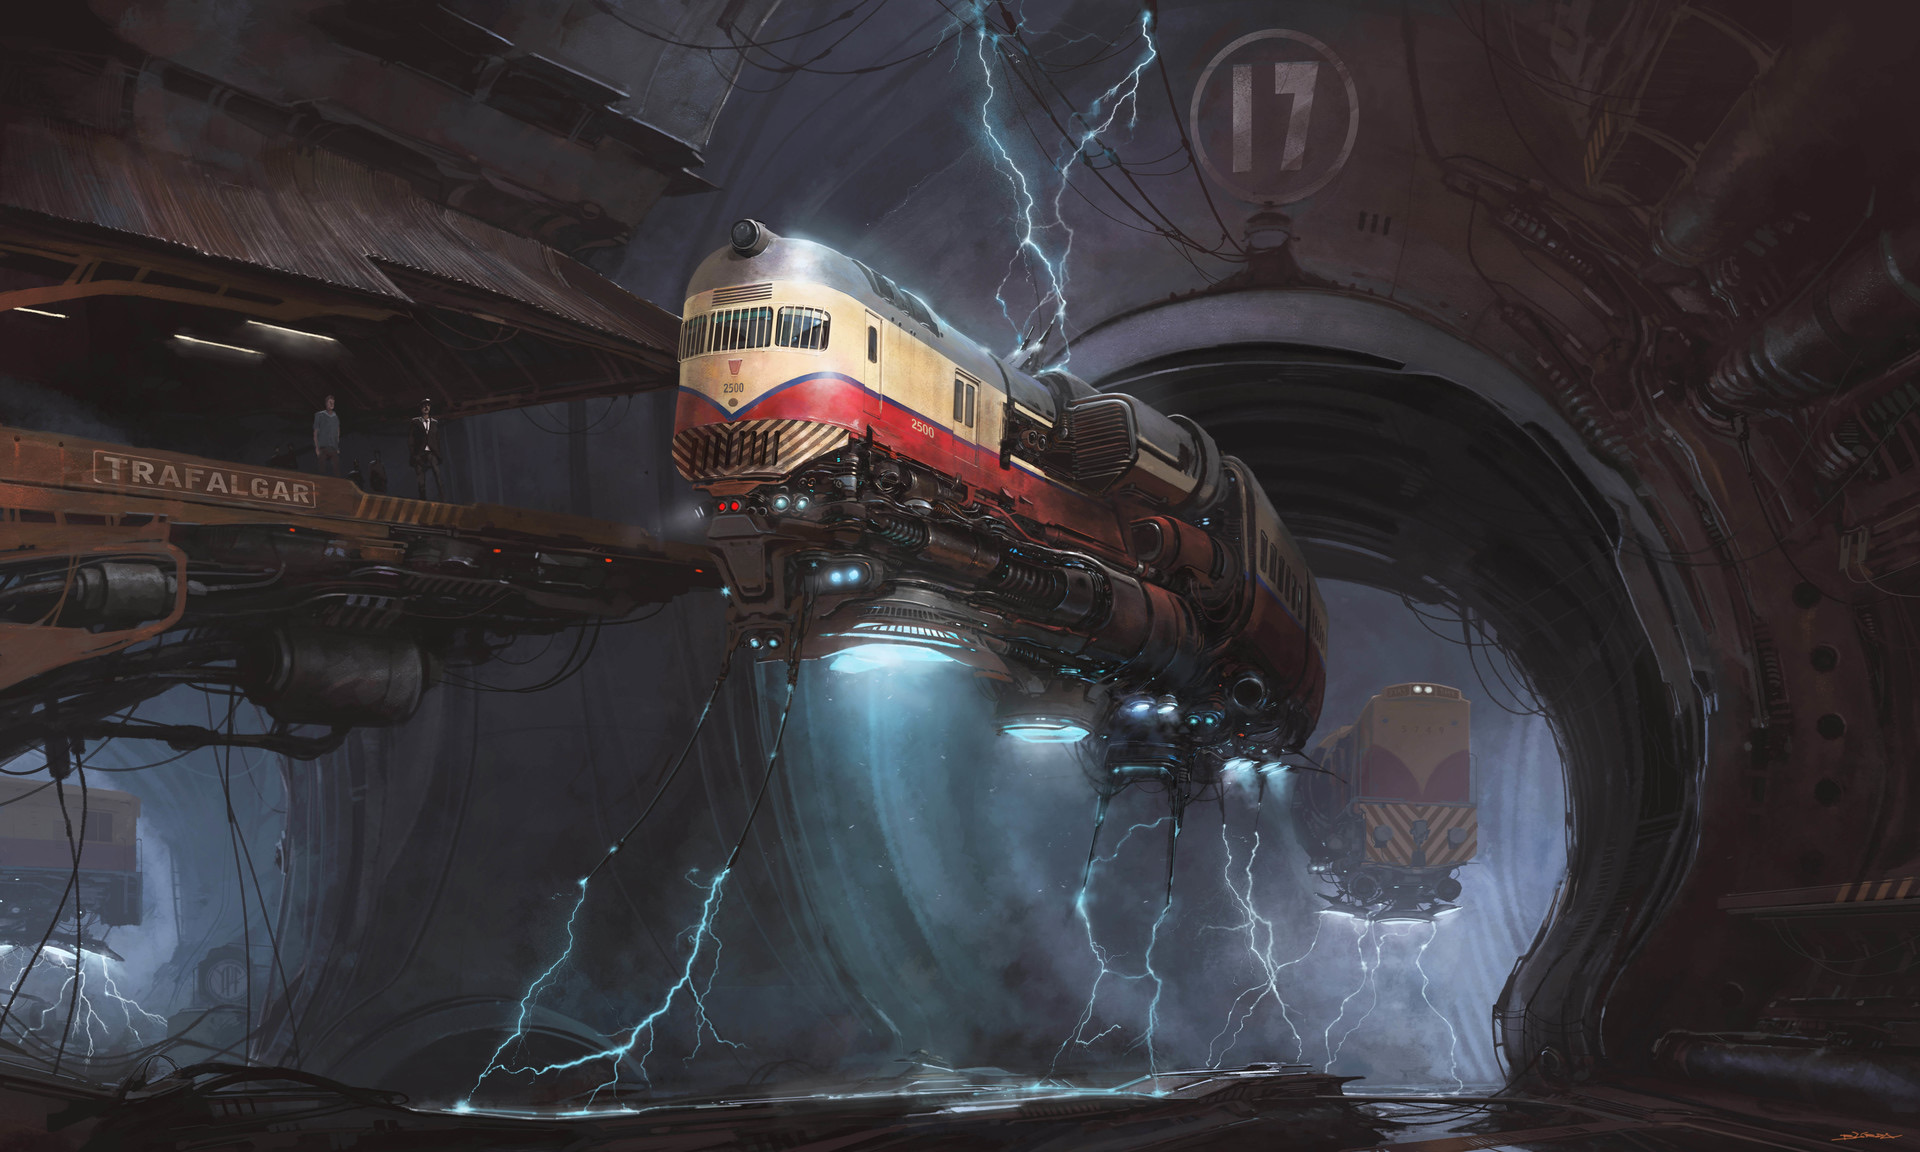 The Sci-Fi Illustrations of Alejandro Burdisio